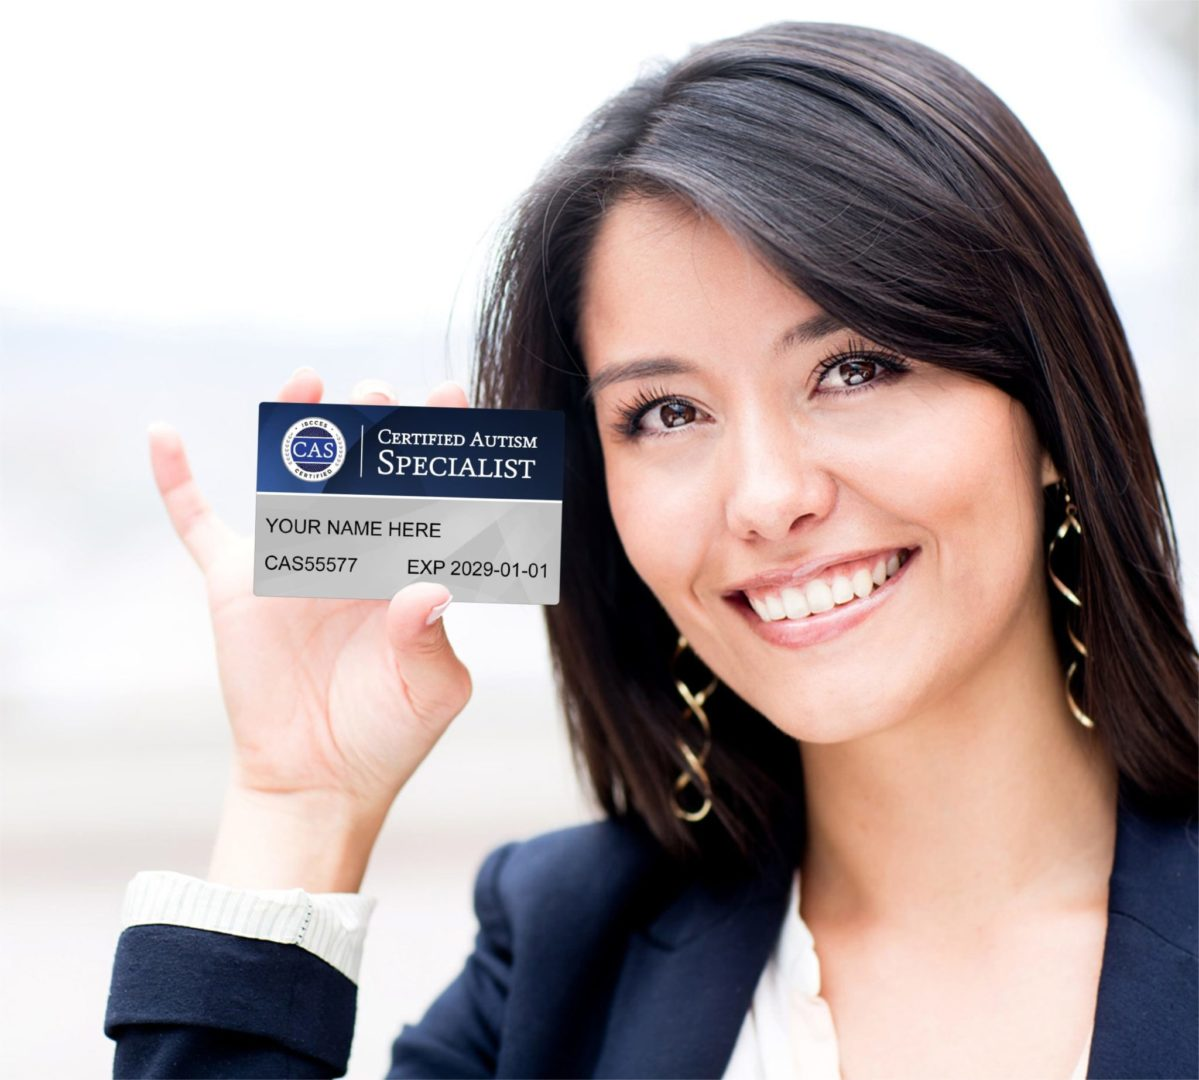 Woman holding her CAS card